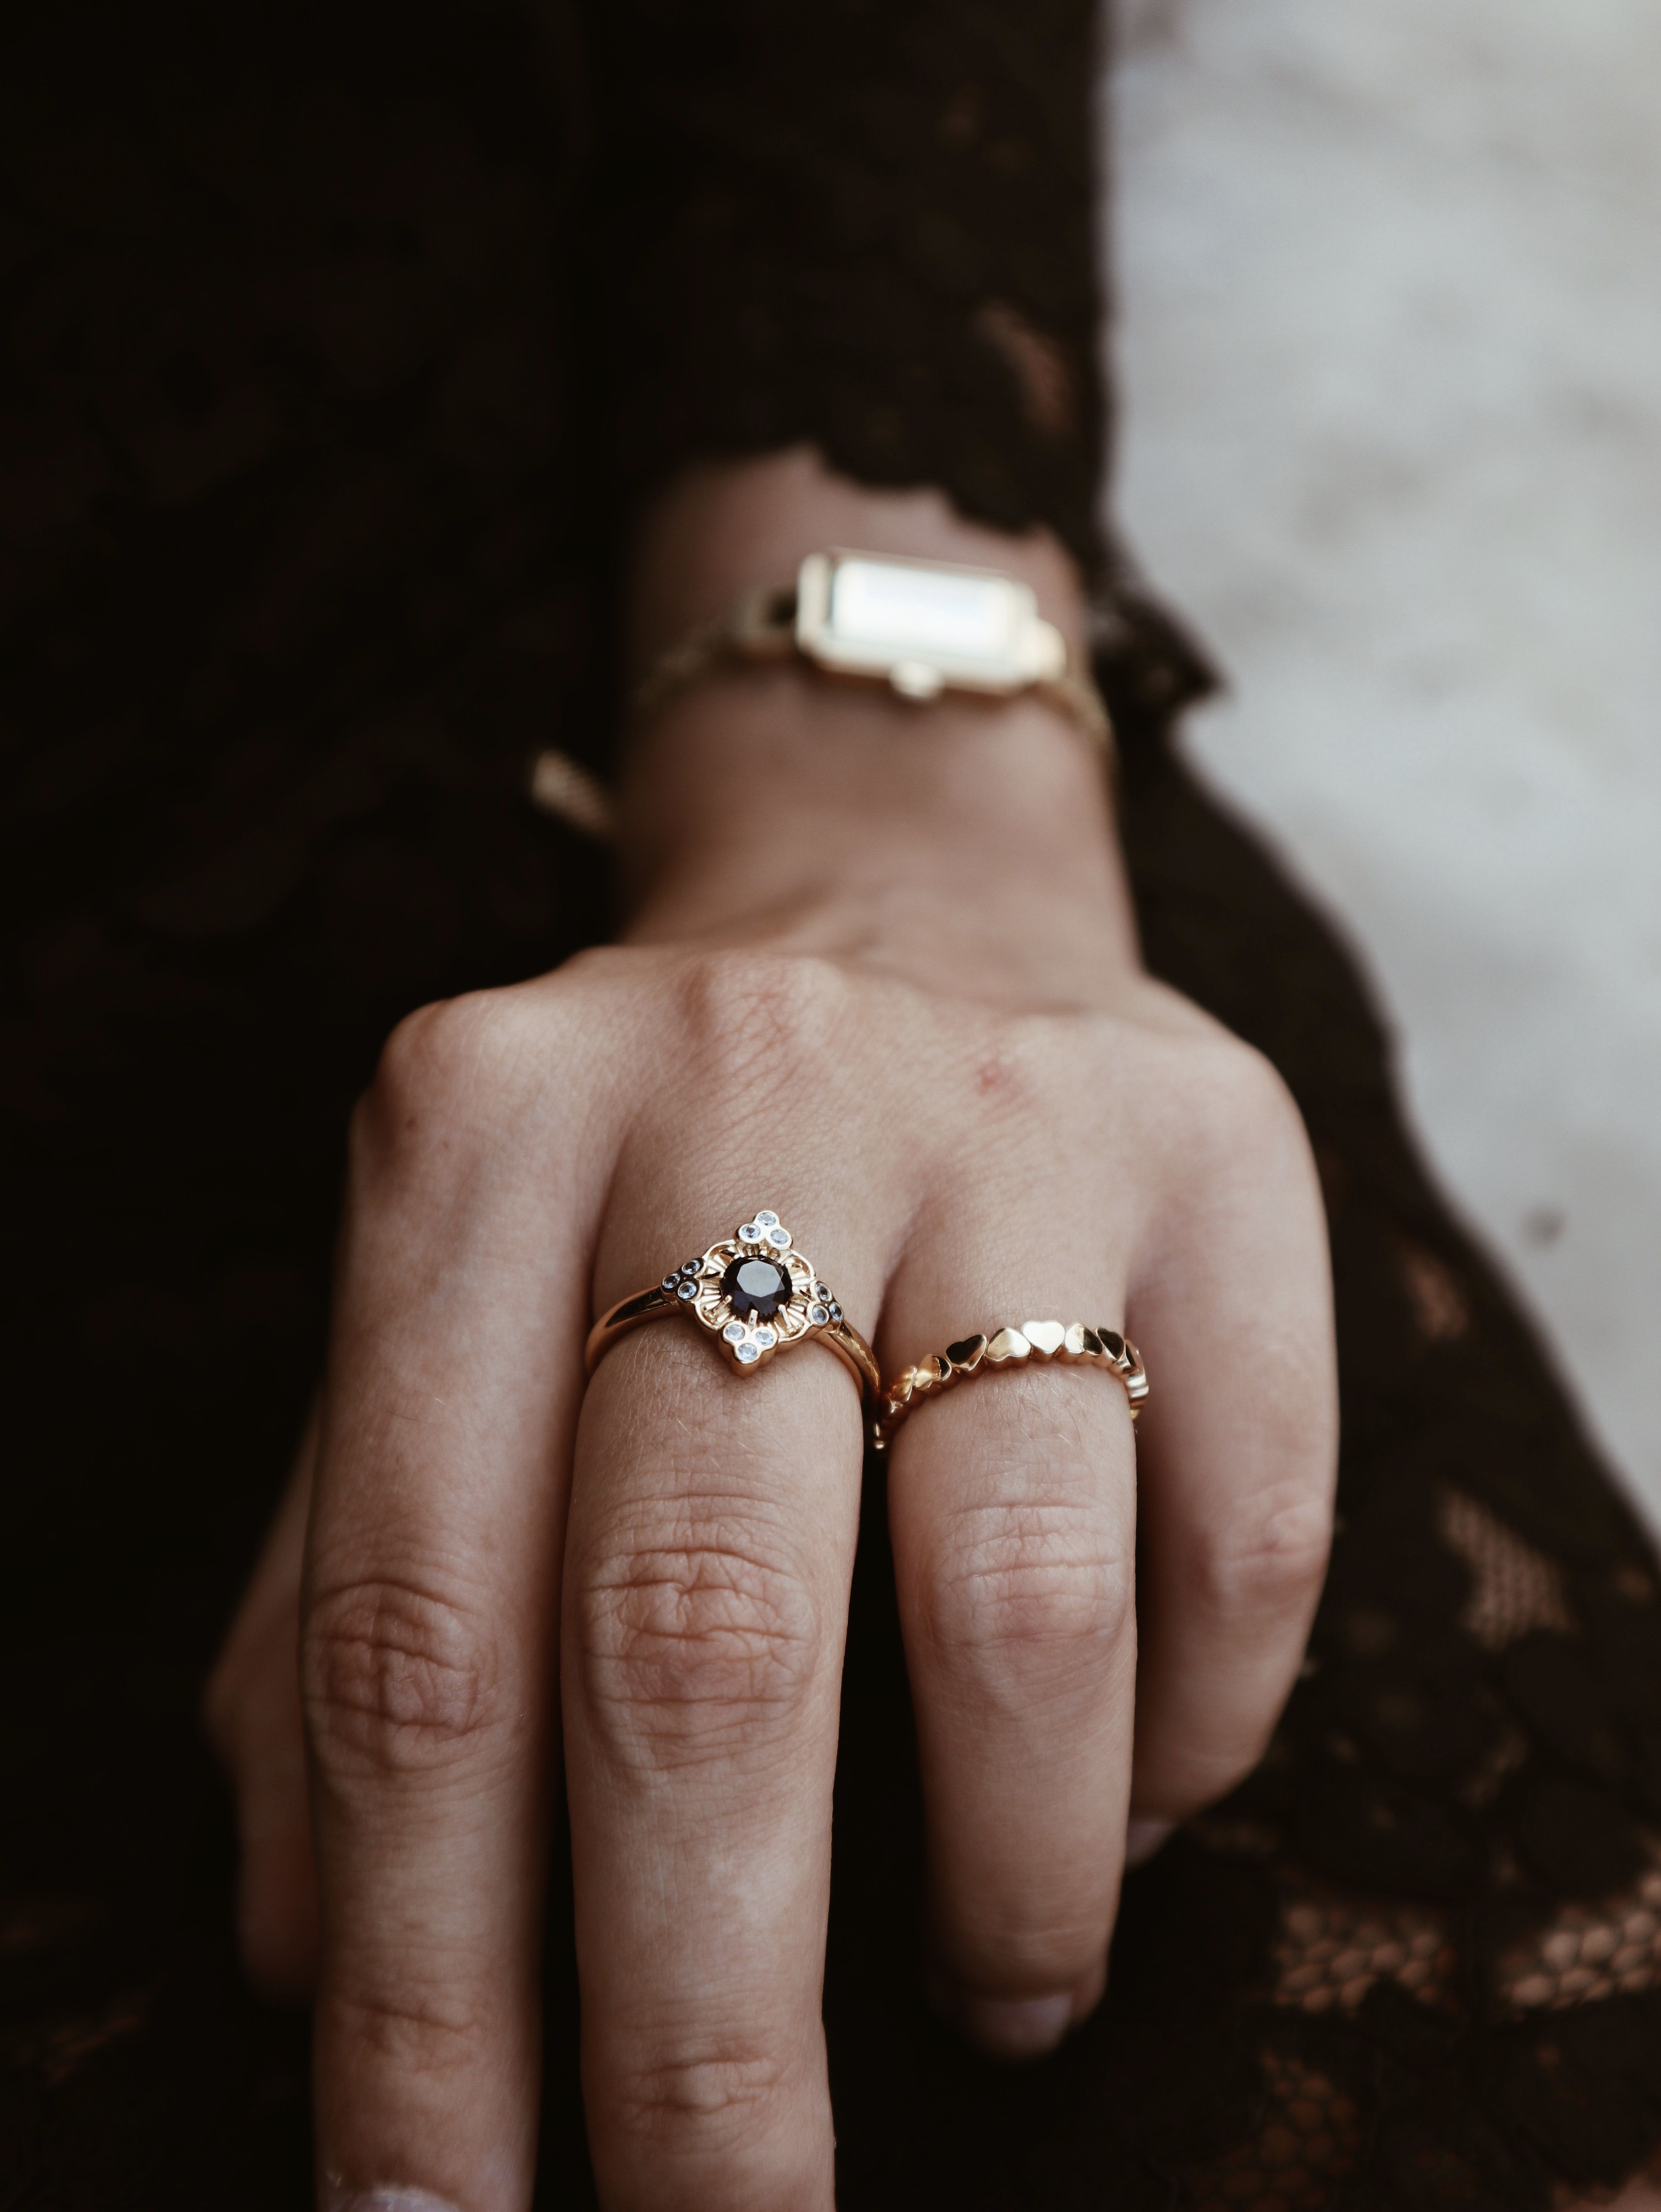 Pin Auf Rings Which Ring Type Are You